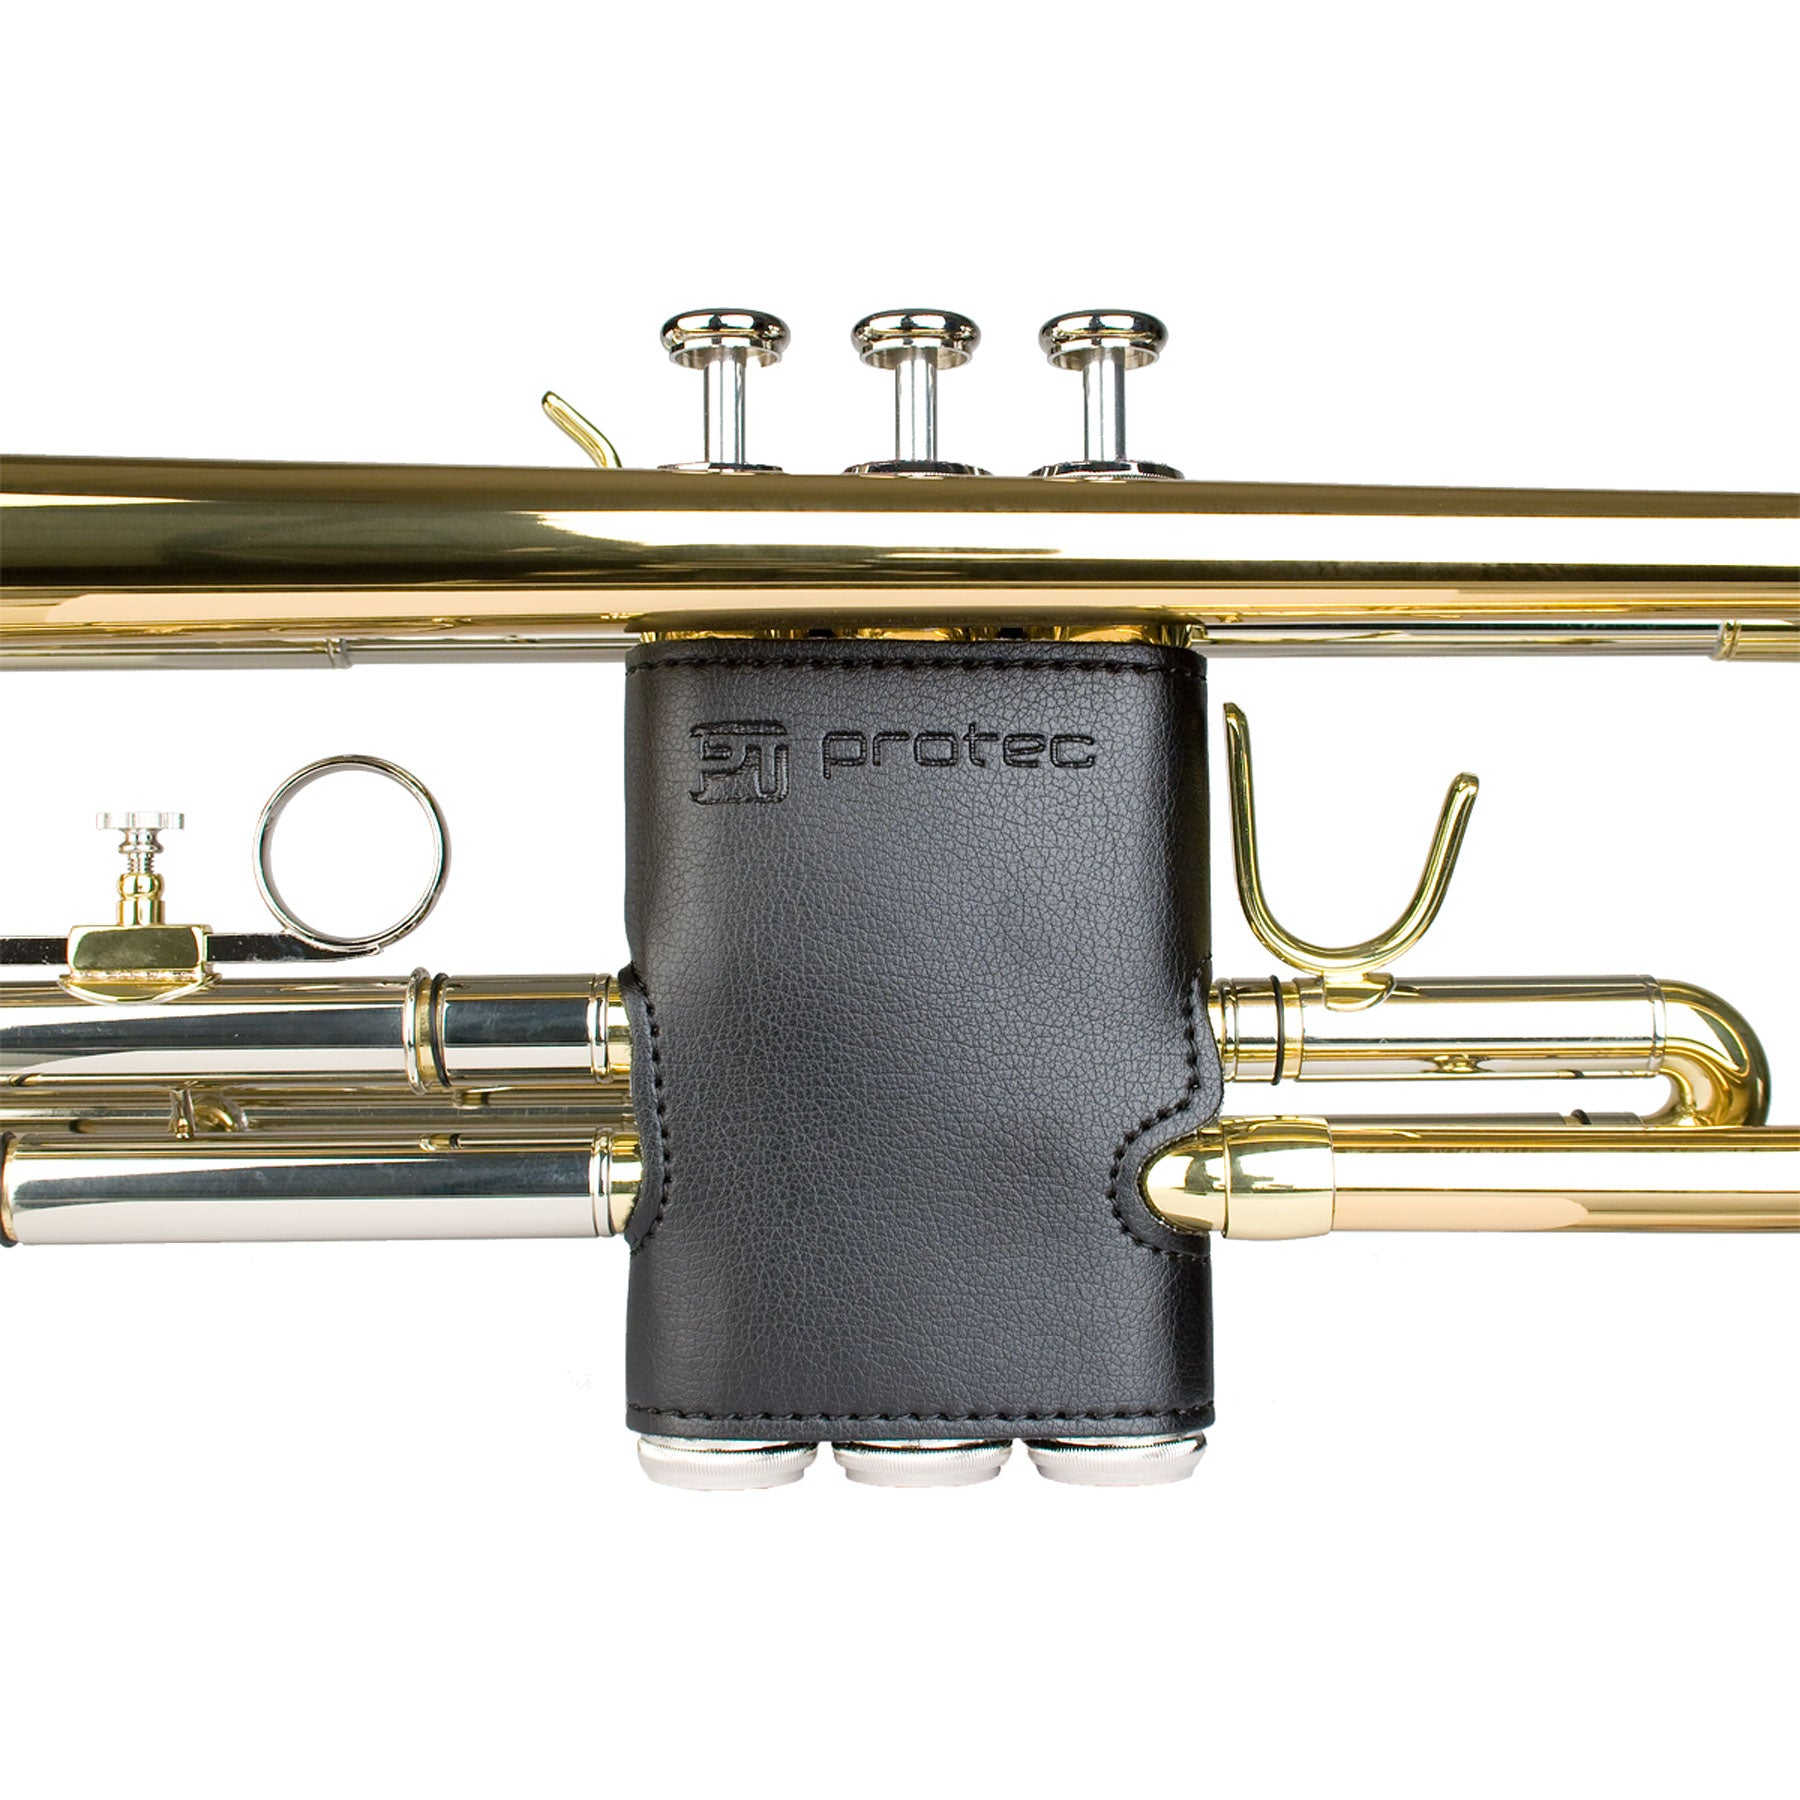 PROTEC Trumpet Vegan Leather Valve Guard